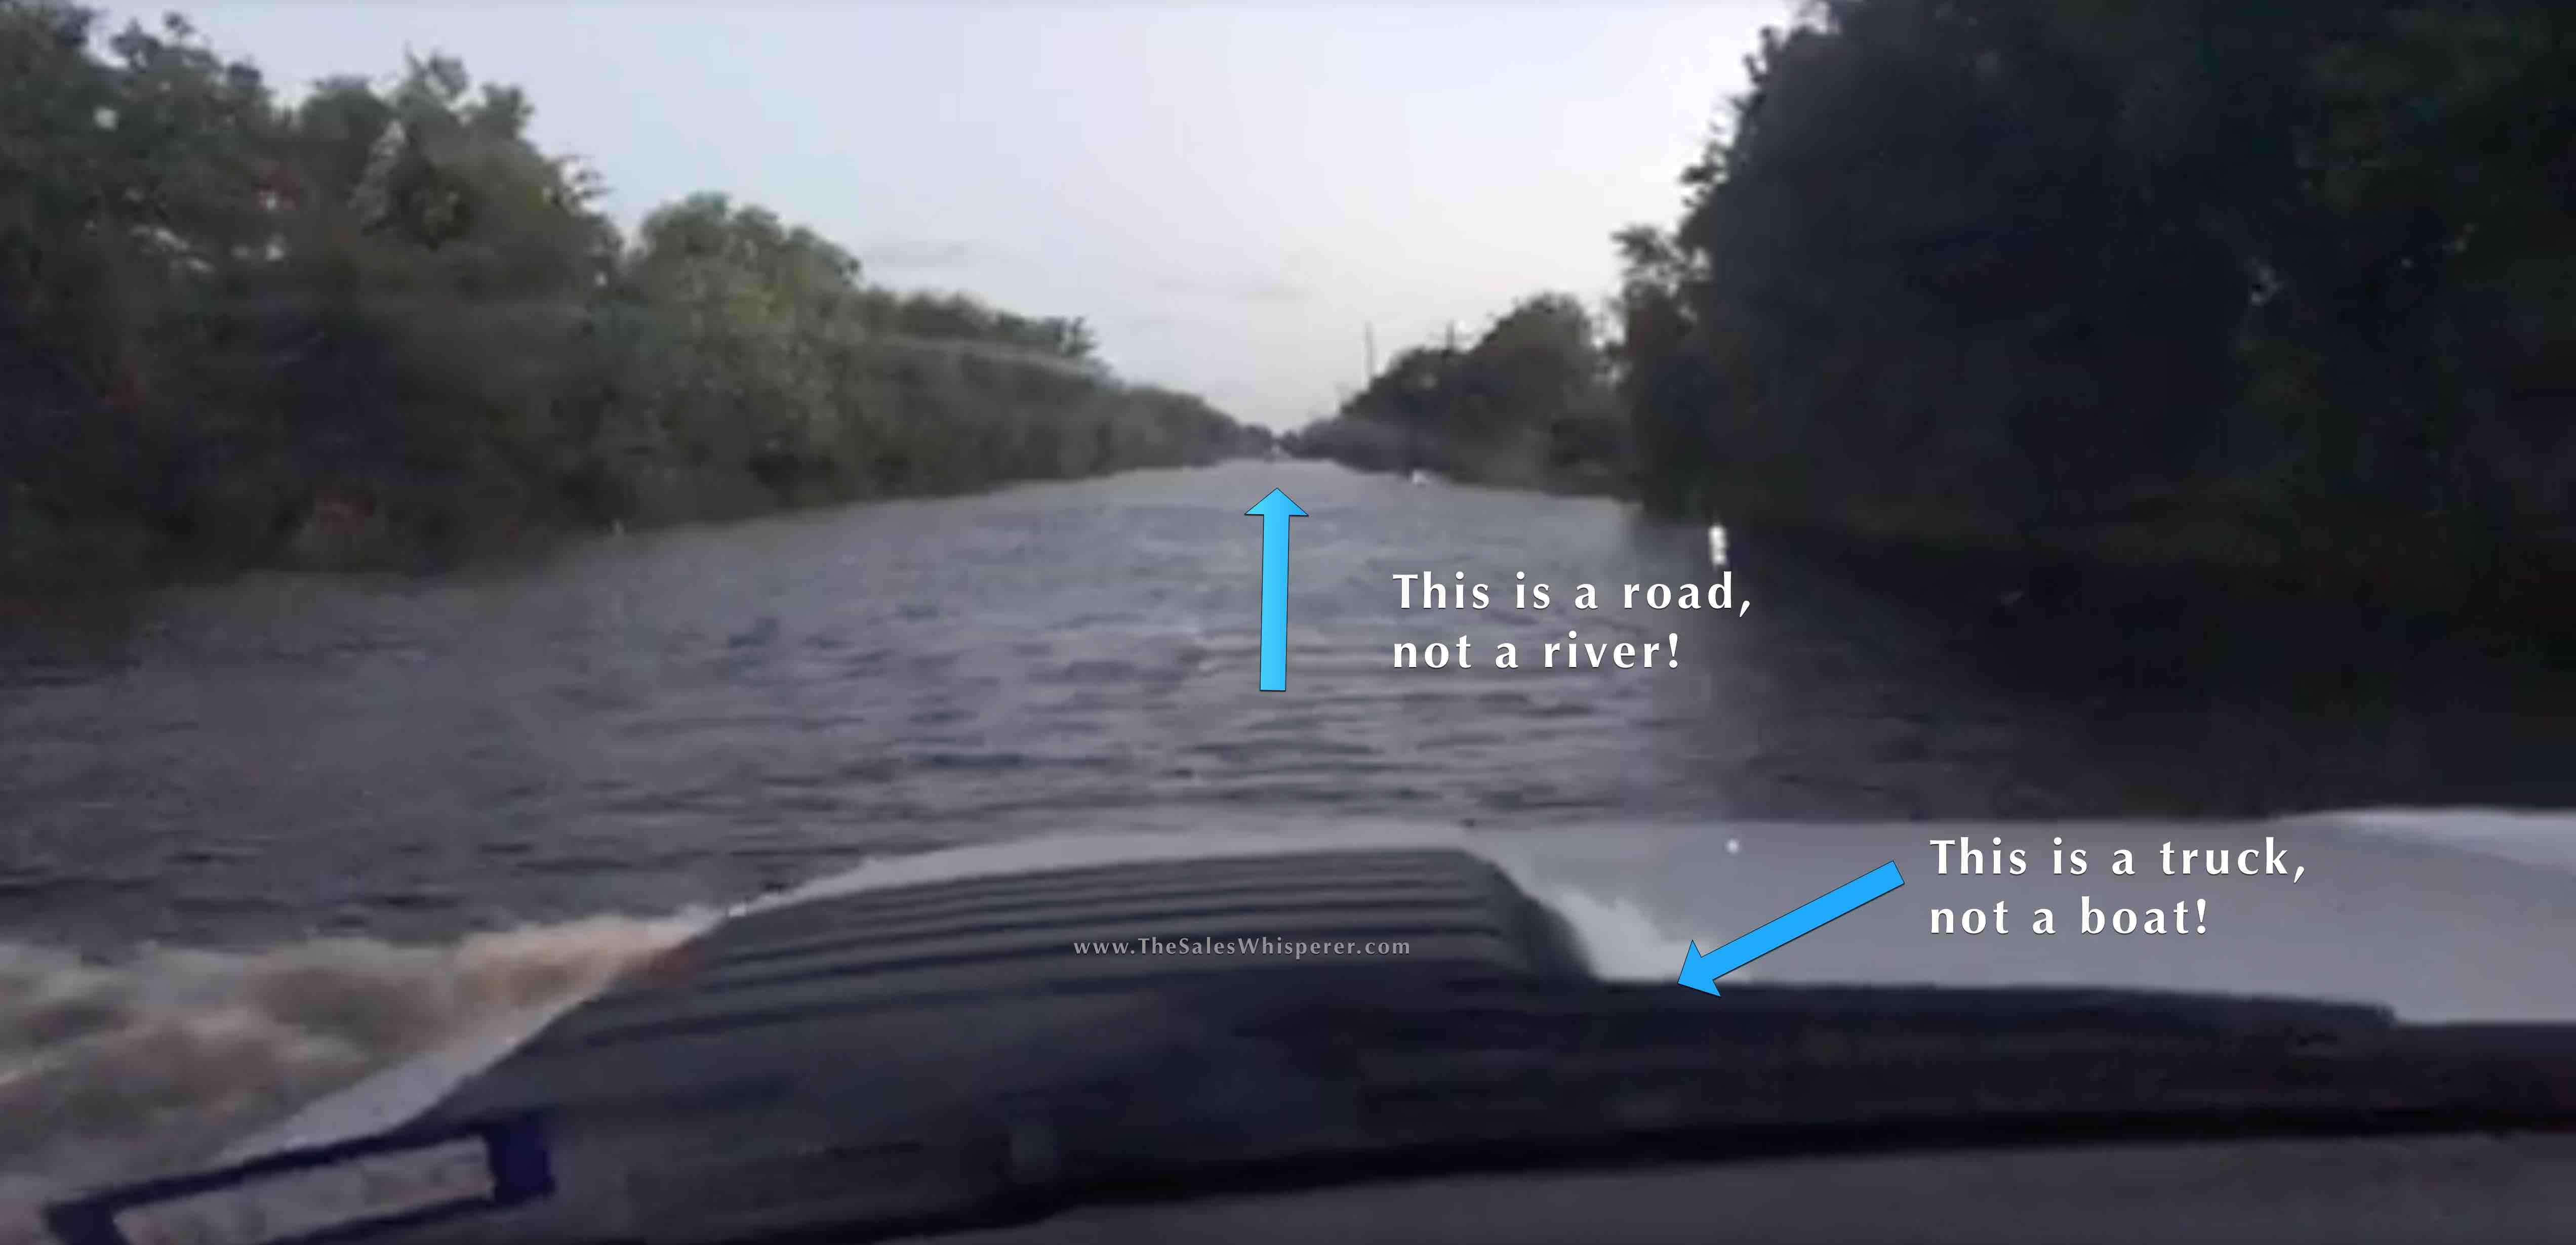 Navigating the flooded roads of Houston after Hurricane Harvey taught me lessons in leadership.